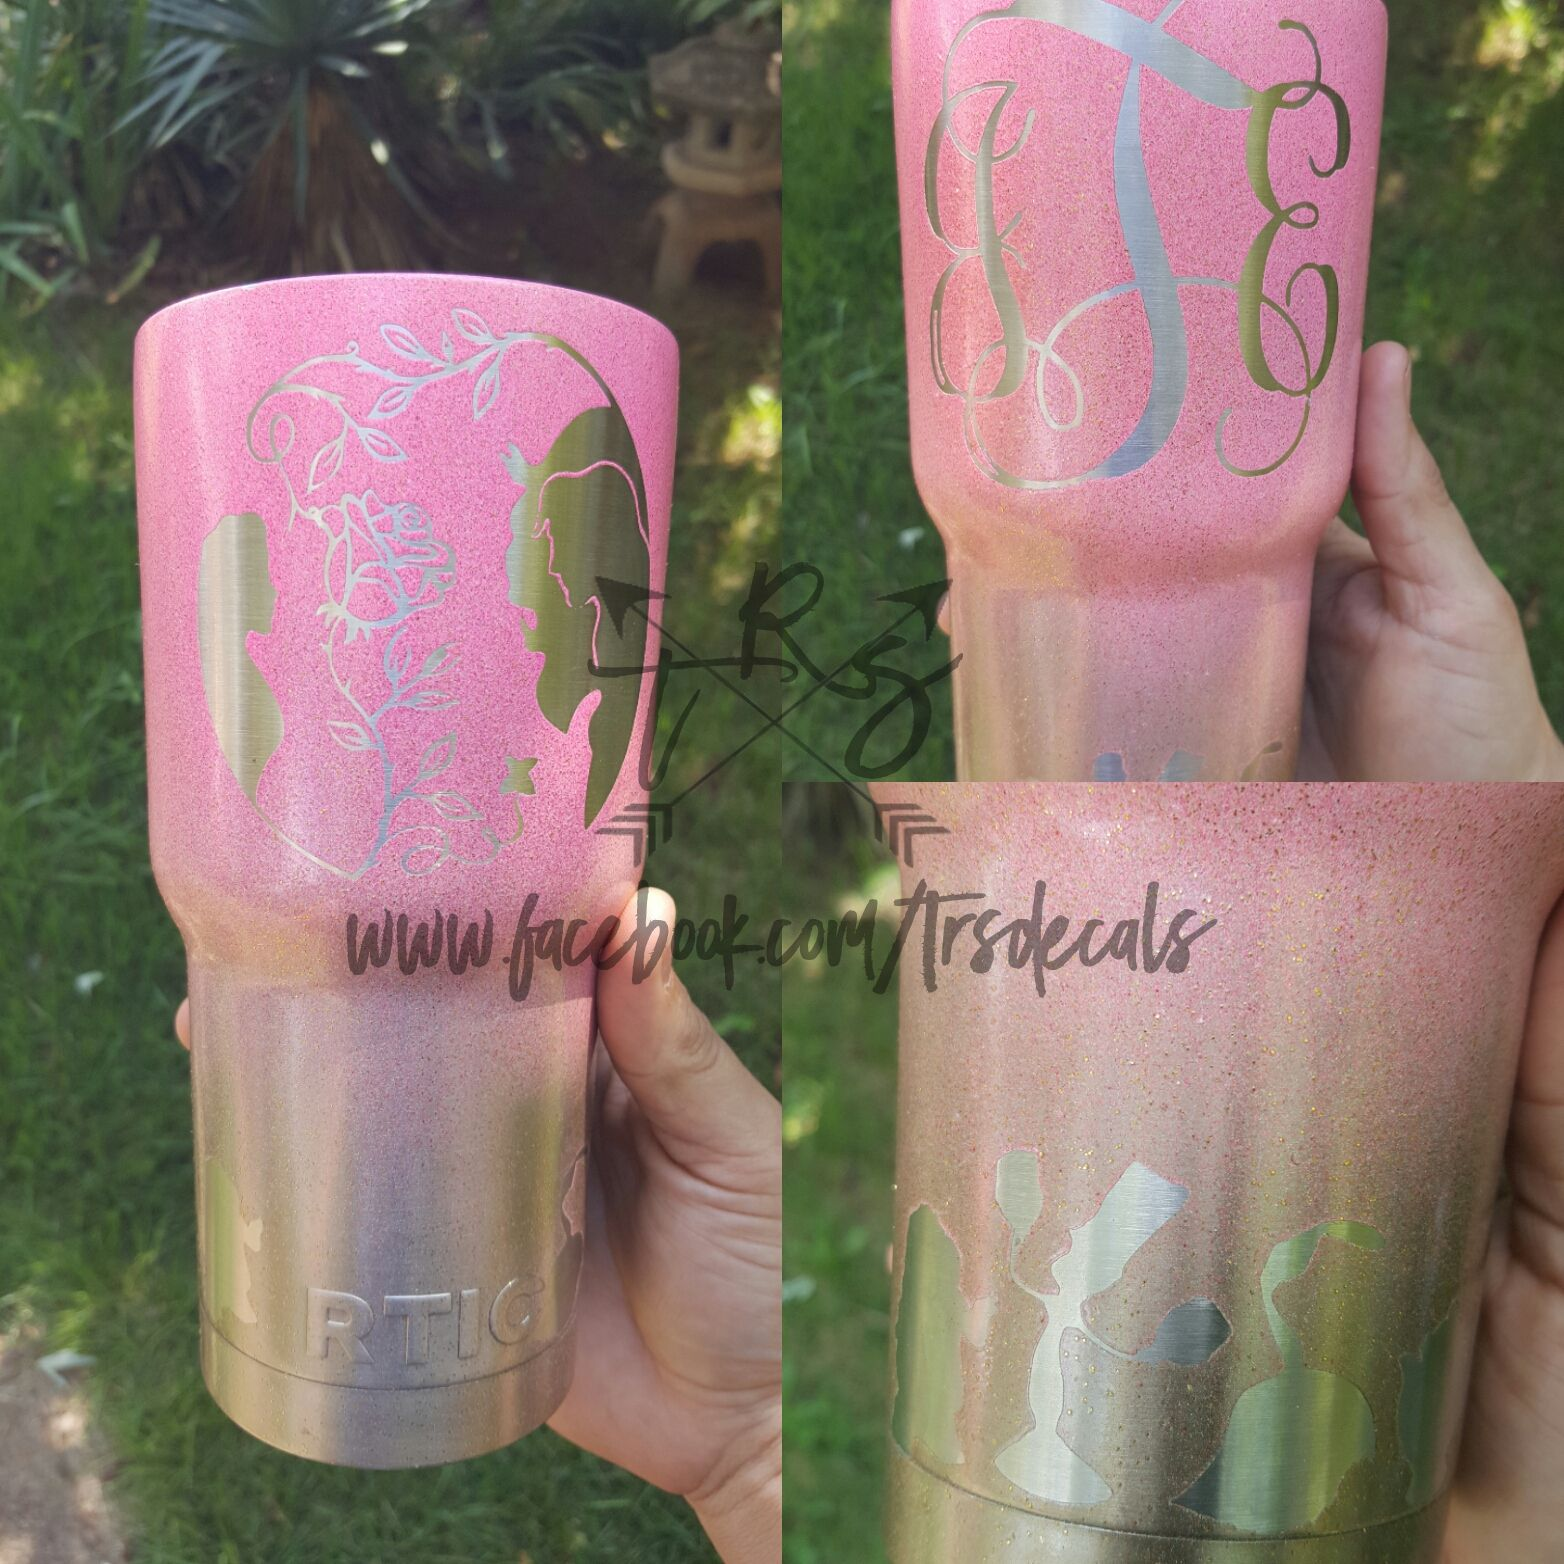 1818d301936 Beauty and the beast customized powder coated rtic yeti cups. | rtic ...